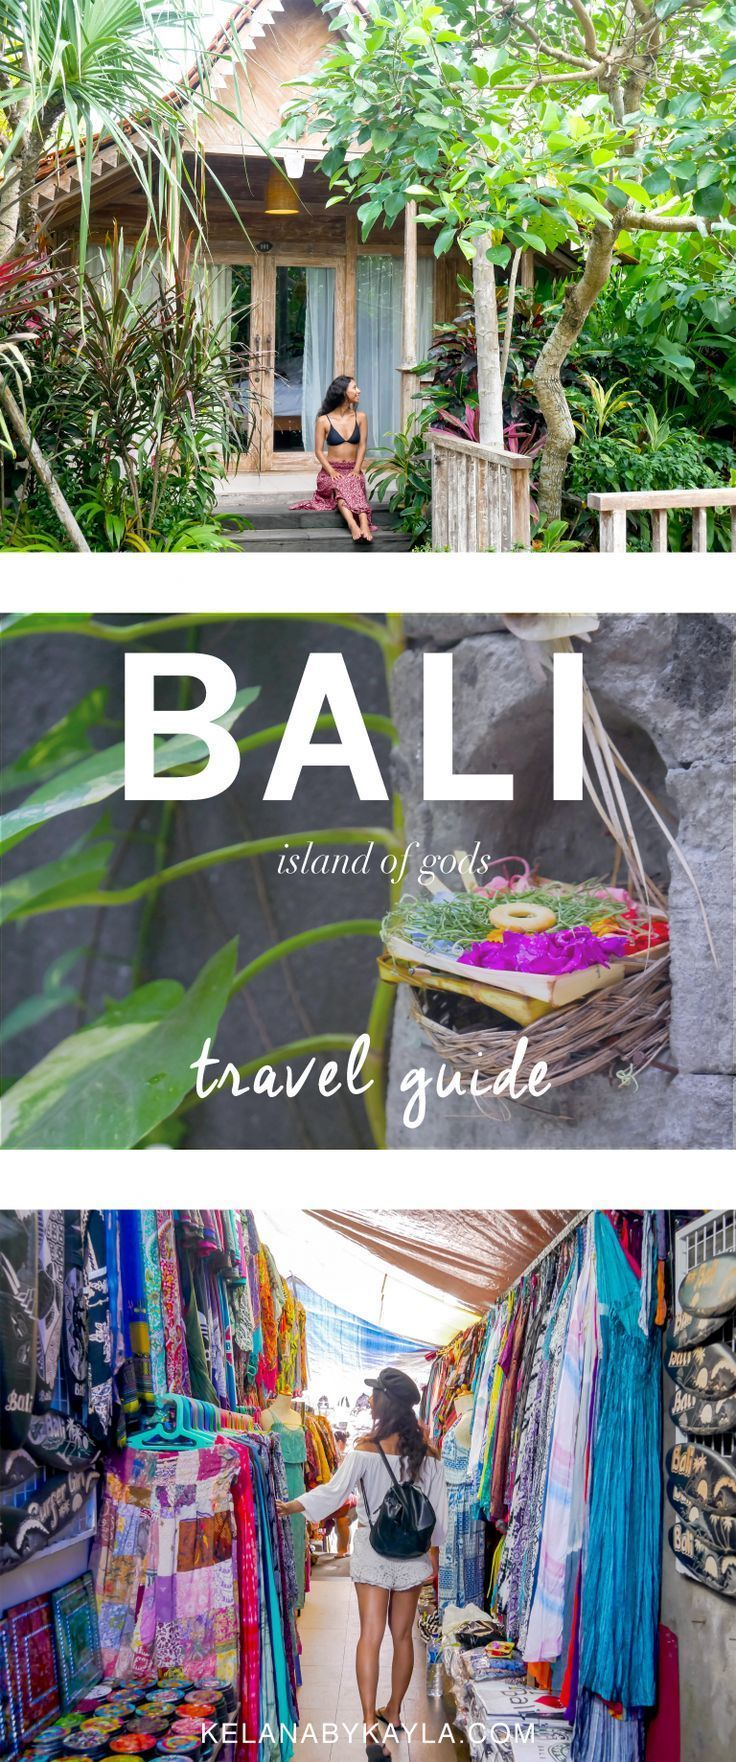 To some Bali is solely a vacation destination, but it has some insanely rich culture waiting to be explored! After many trips, here's our Bali Travel Guide. #BaliDestination